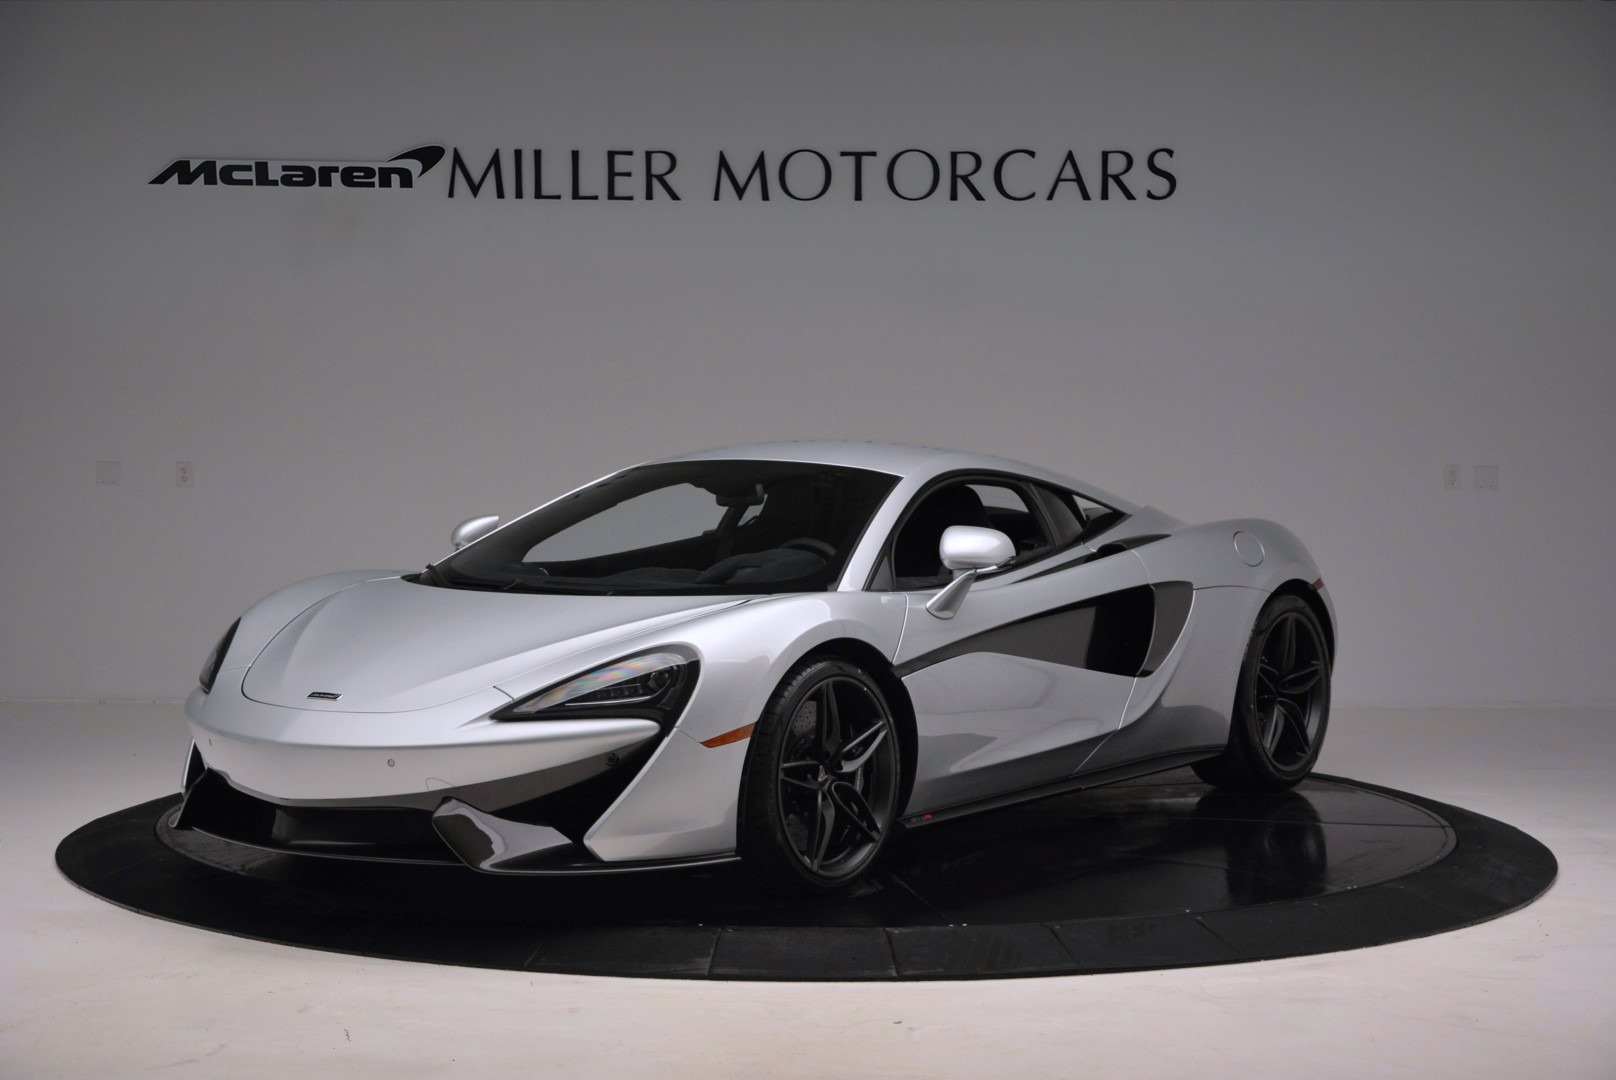 Used 2017 McLaren 570S Coupe for sale $149,900 at Bentley Greenwich in Greenwich CT 06830 1